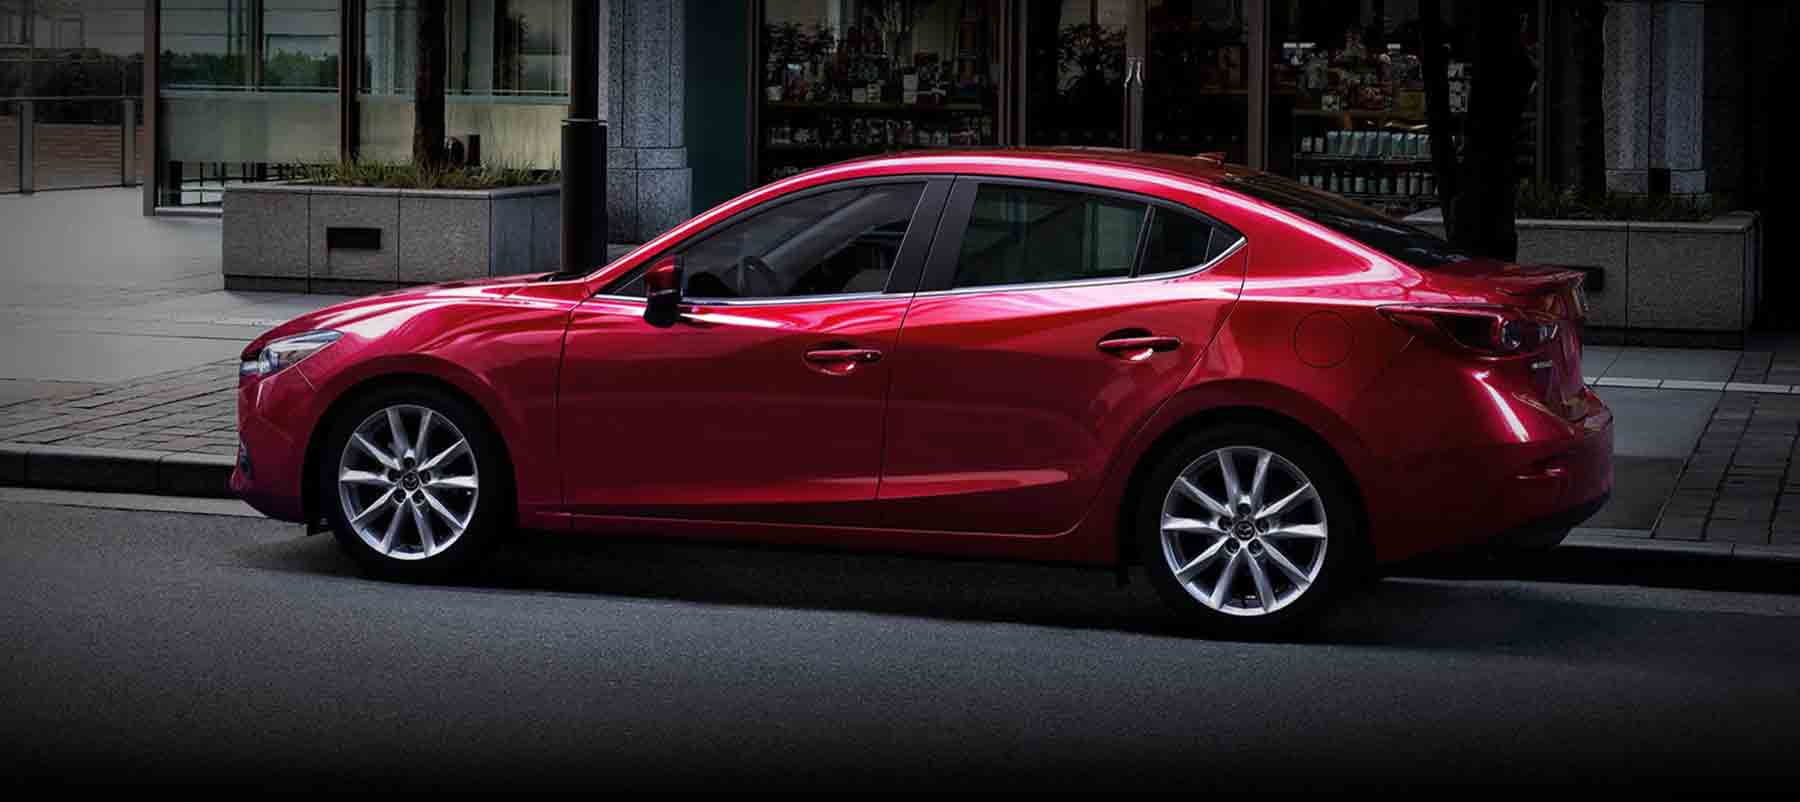 2018 Mazda3 Sedan, TAKES THE EVERYDAY OUT OF DRIVING